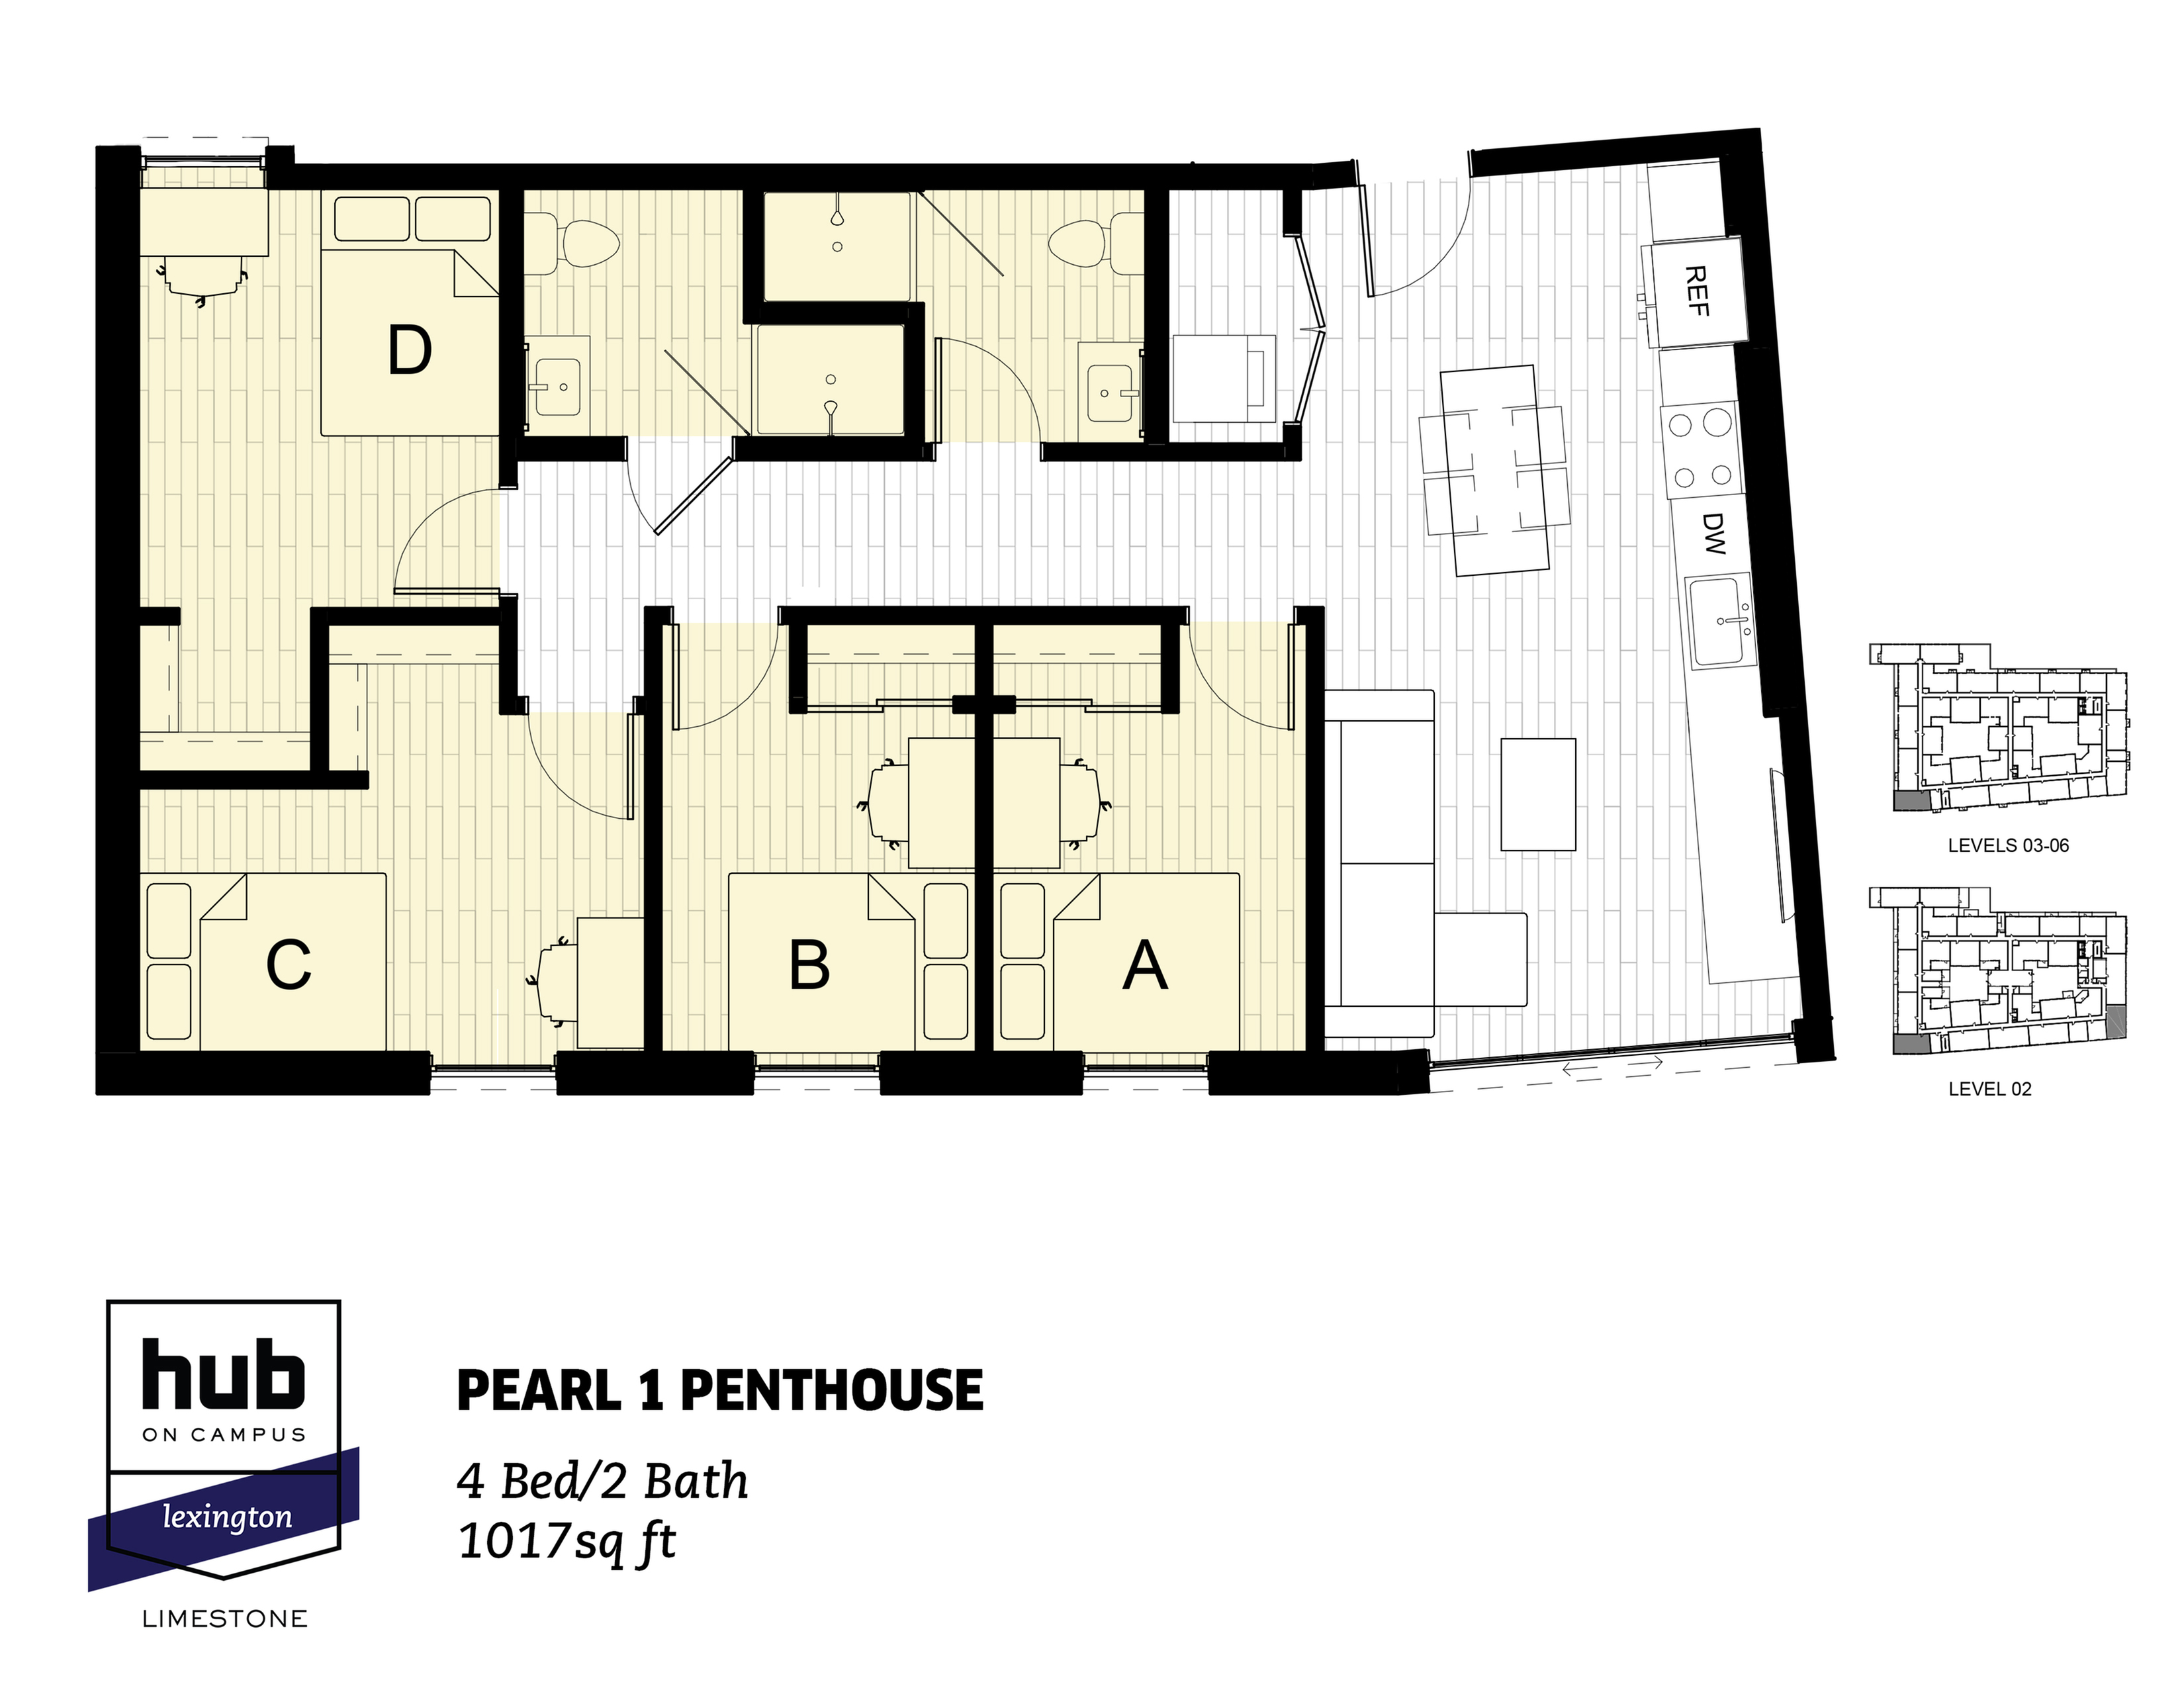 Pearl 1 Penthouse